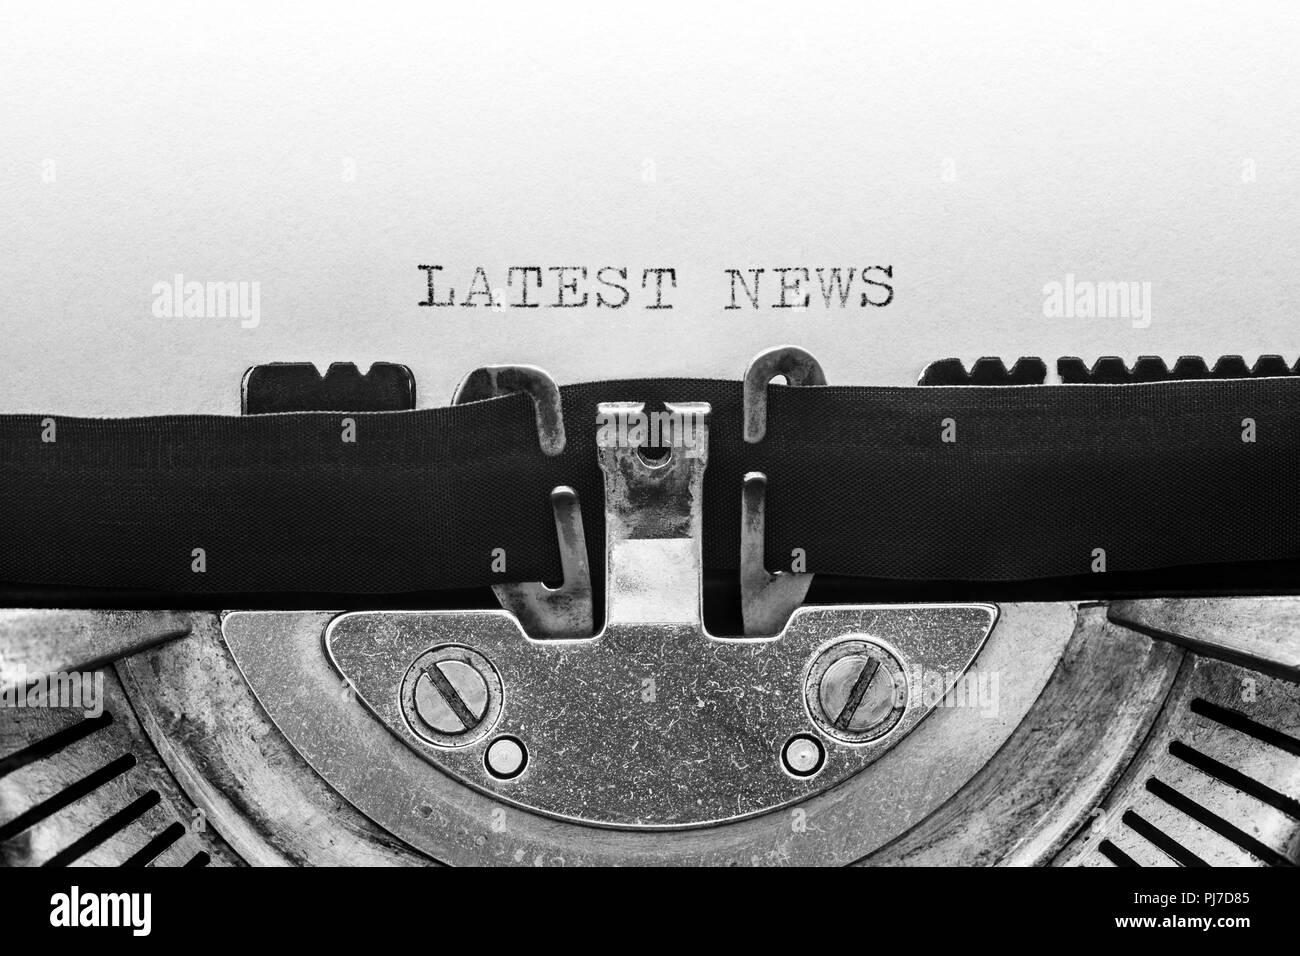 Latest news typed on a vintage typewriter - Stock Image